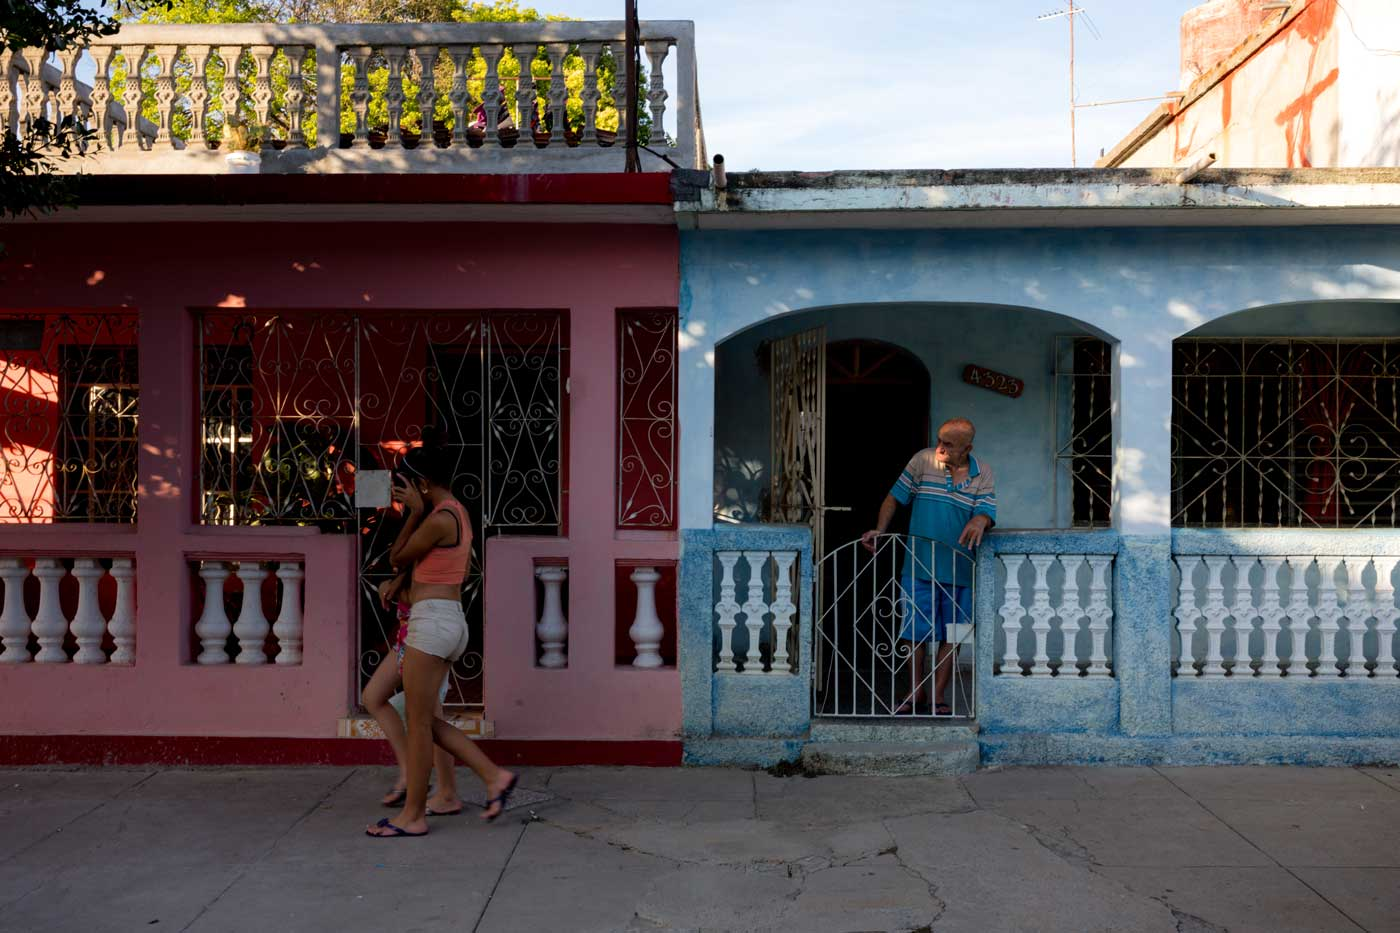 travel-cuba-cienfuegos-leica-m10-rangefinder-35mm-f2-summicron-iv-pre-a-trip-contrast-colour-mini-skirt-old-man-staring